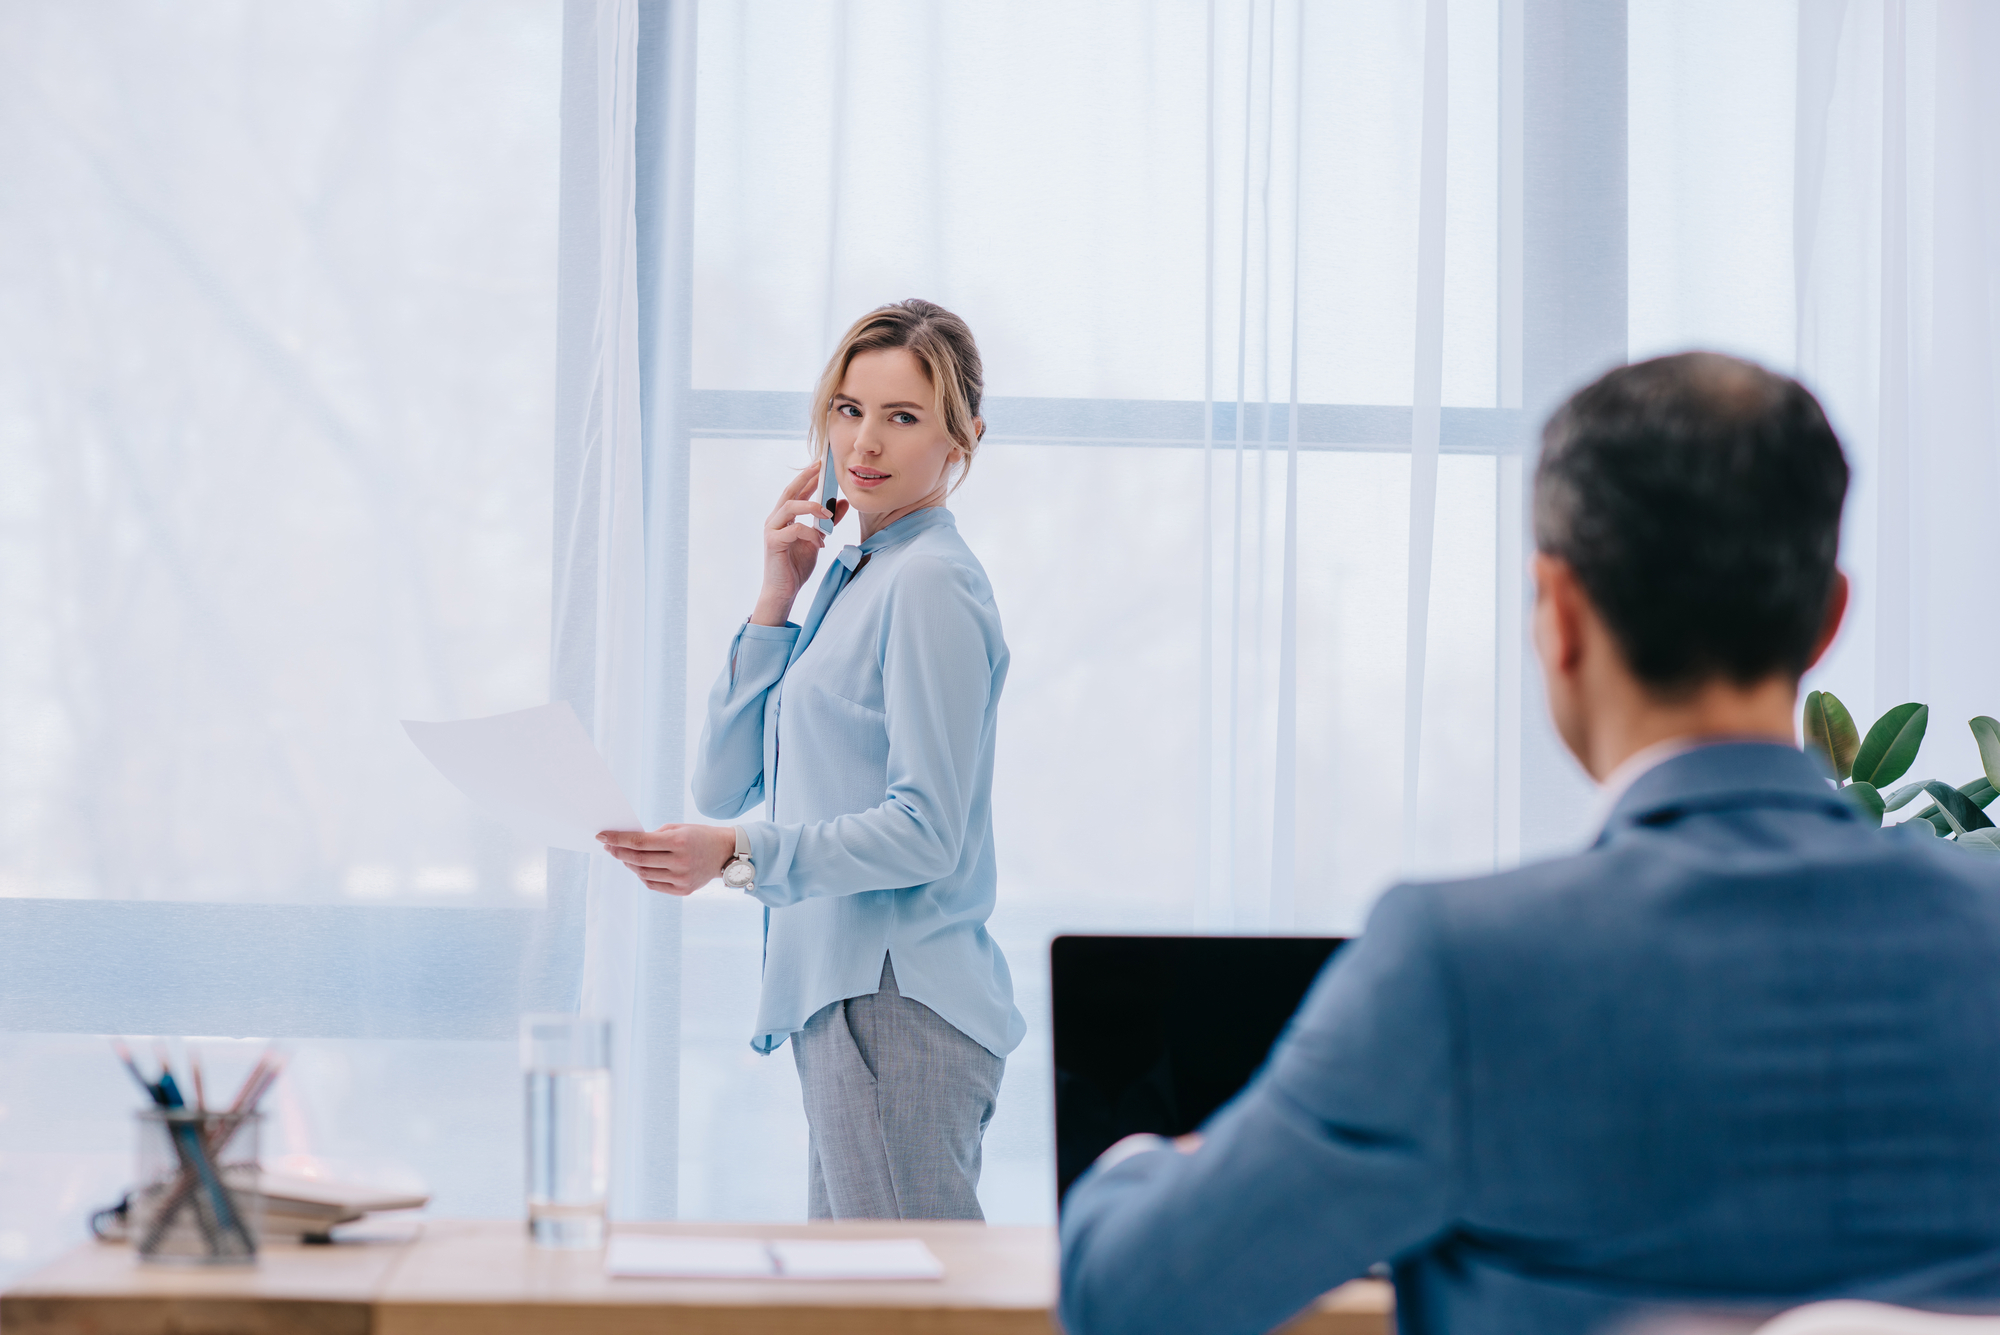 Businesswoman talking by phone at office while her colleague working with laptop on foreground